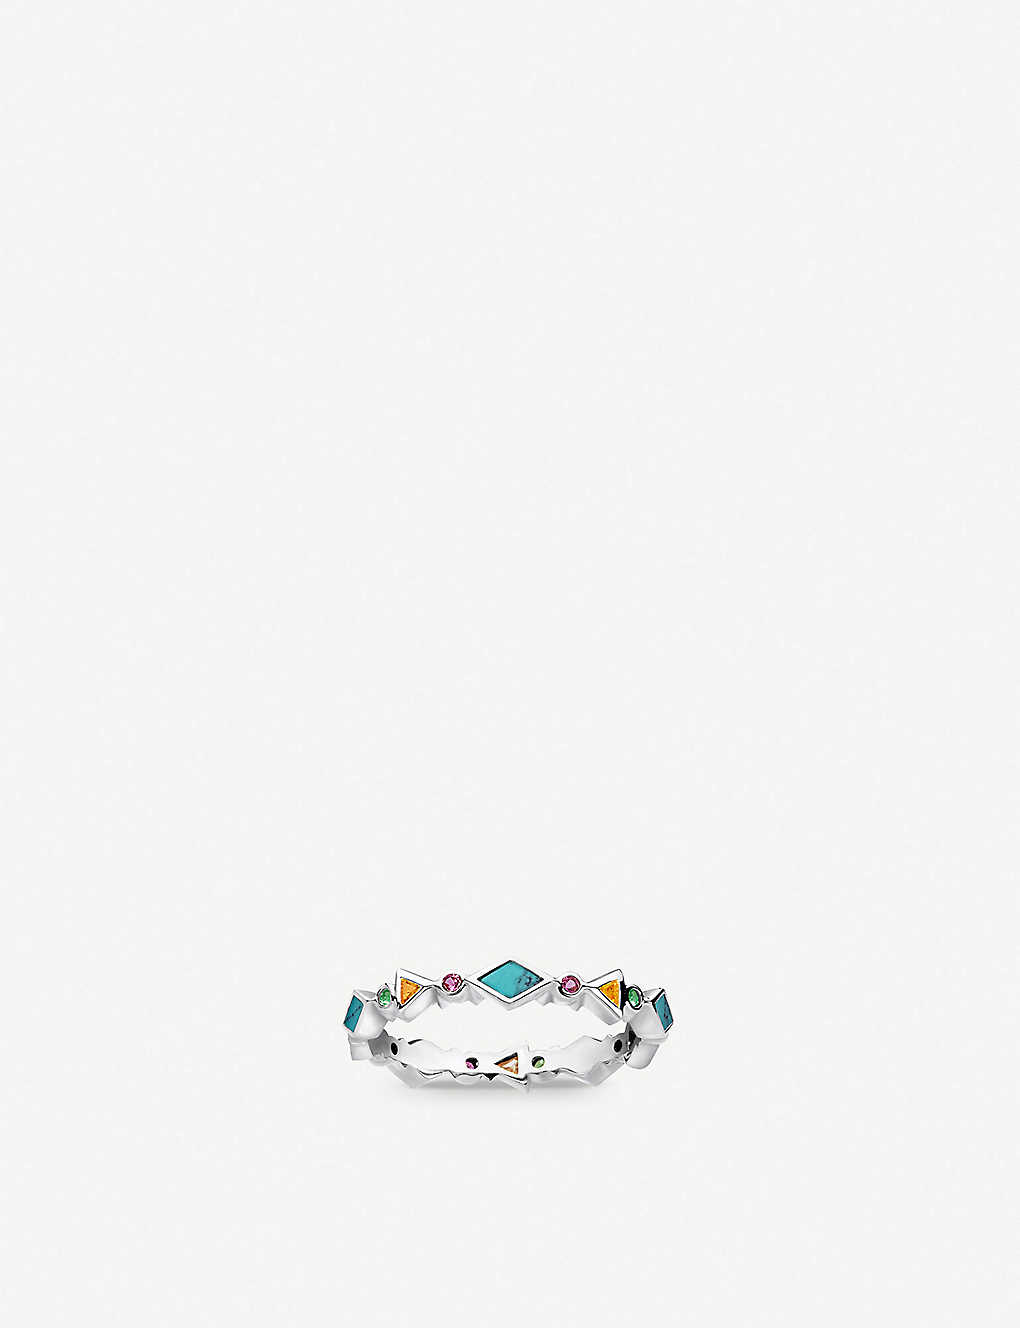 THOMAS SABO: Colourful Stones sterling silver and zirconia band ring